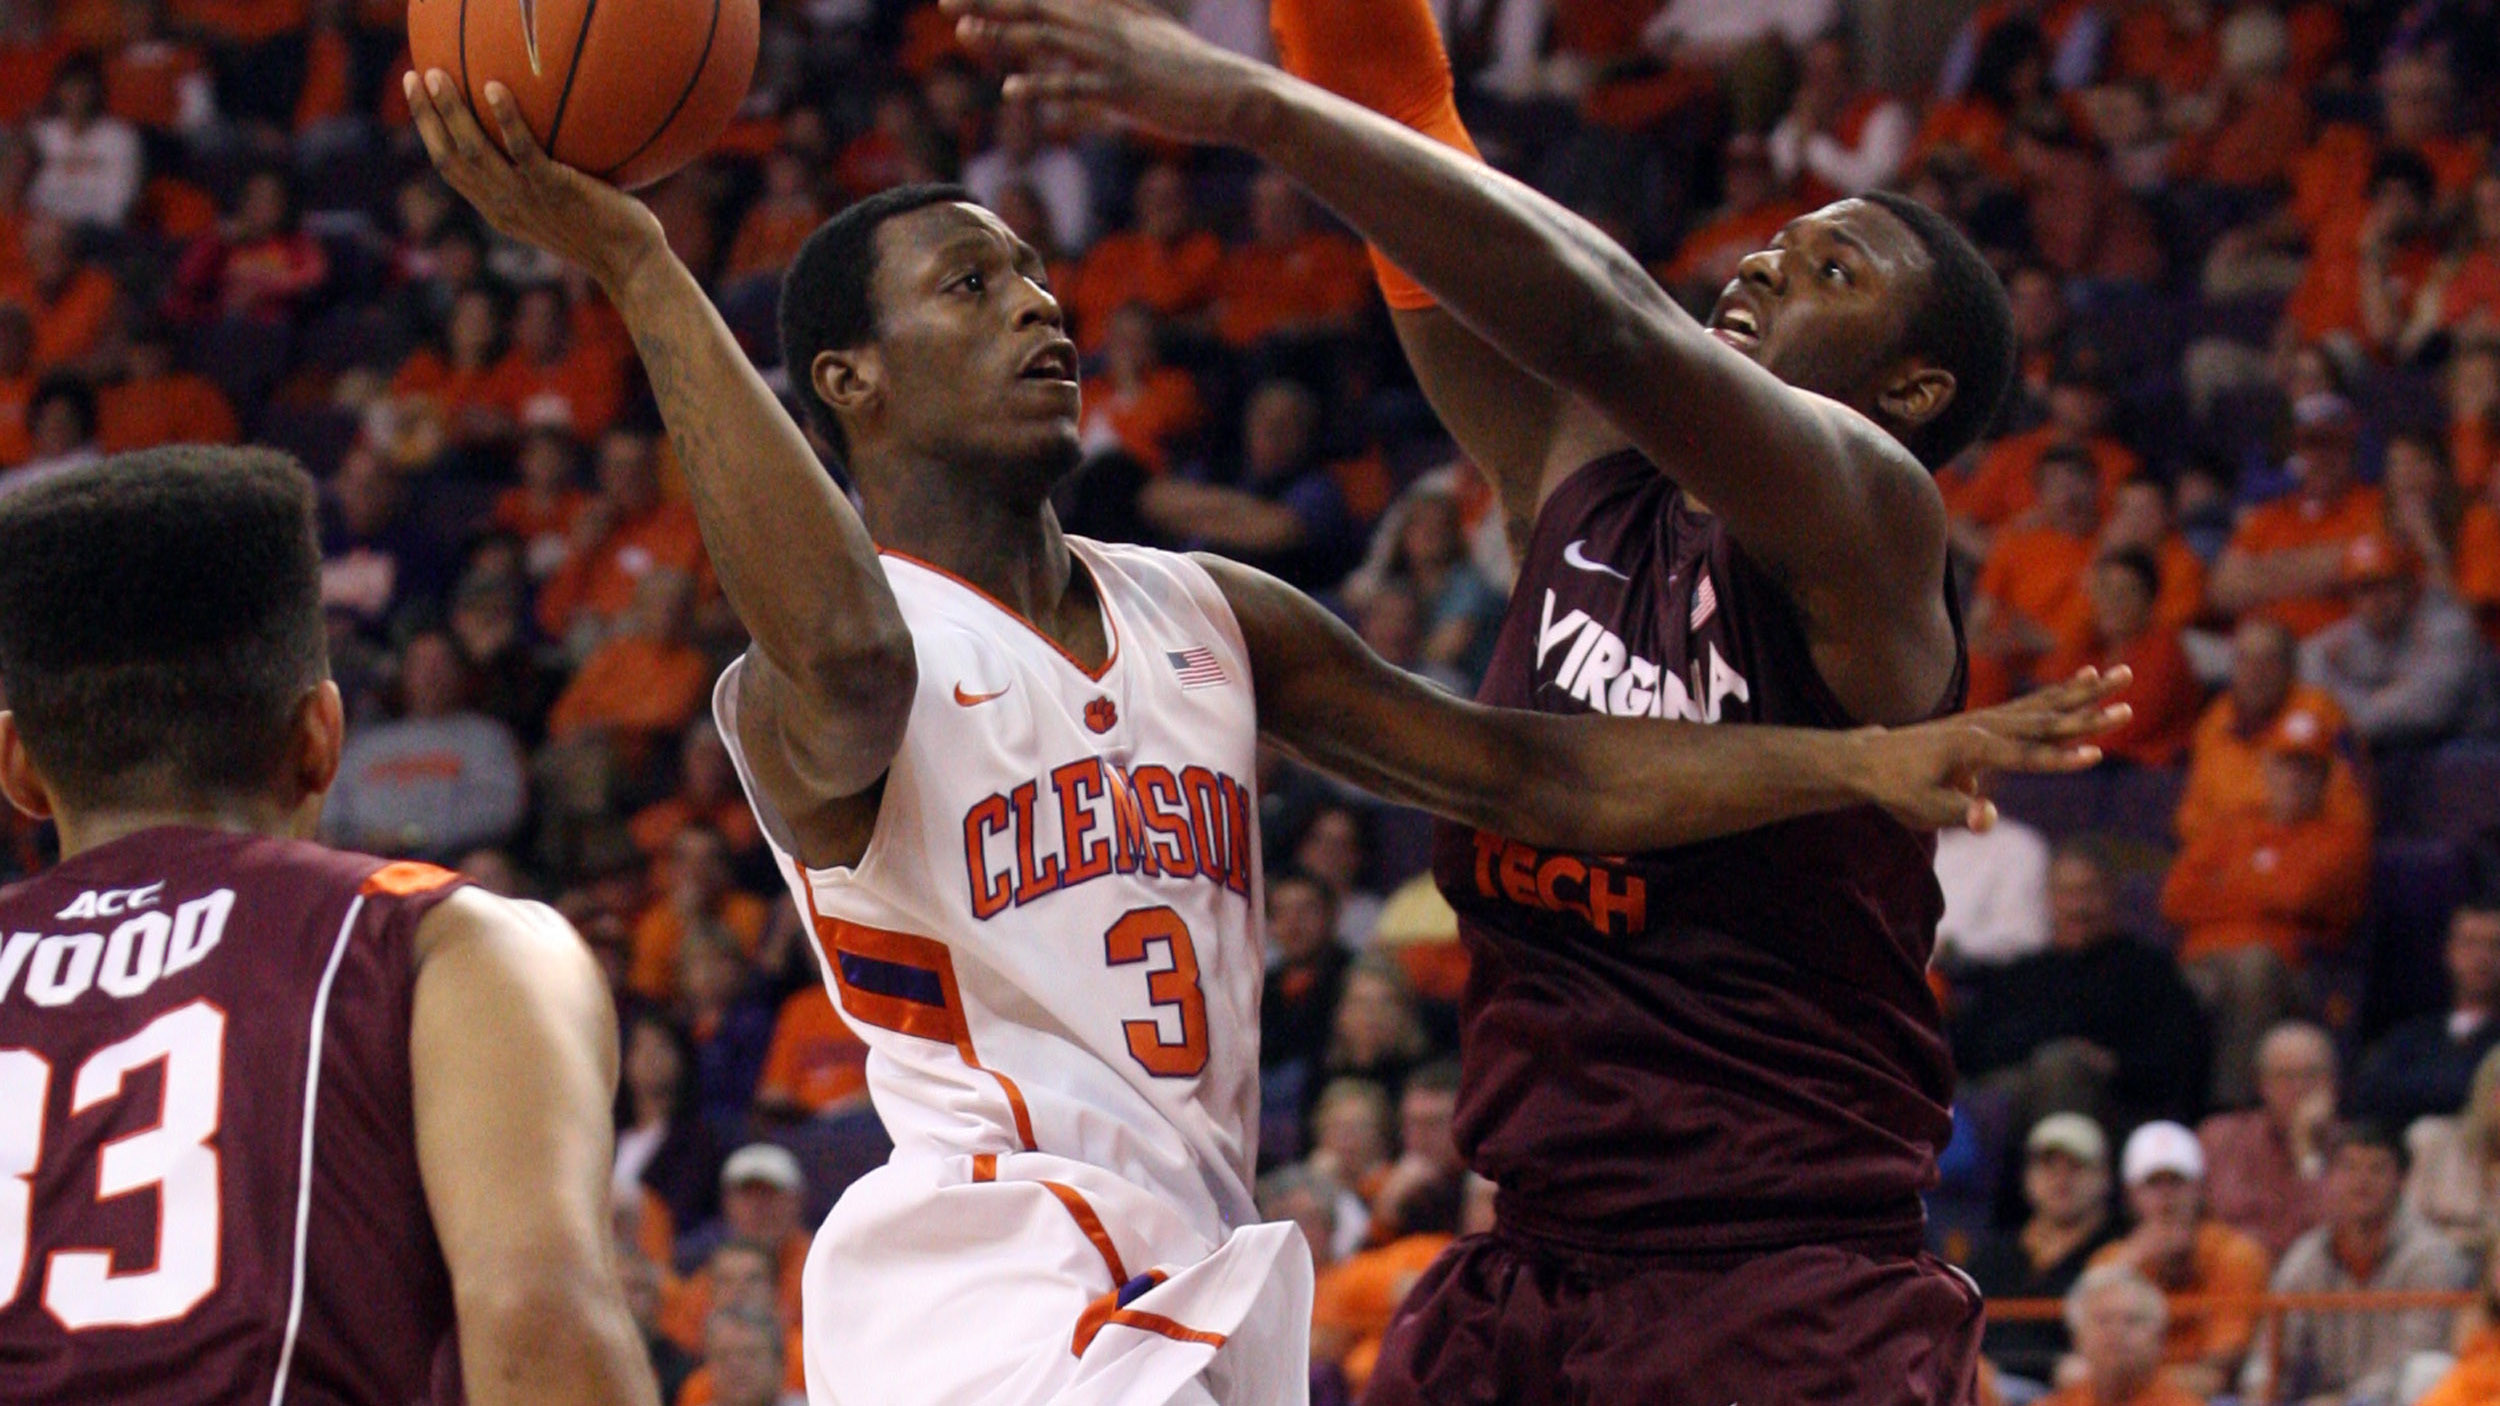 Tigers to Face Boston College on the Road Saturday